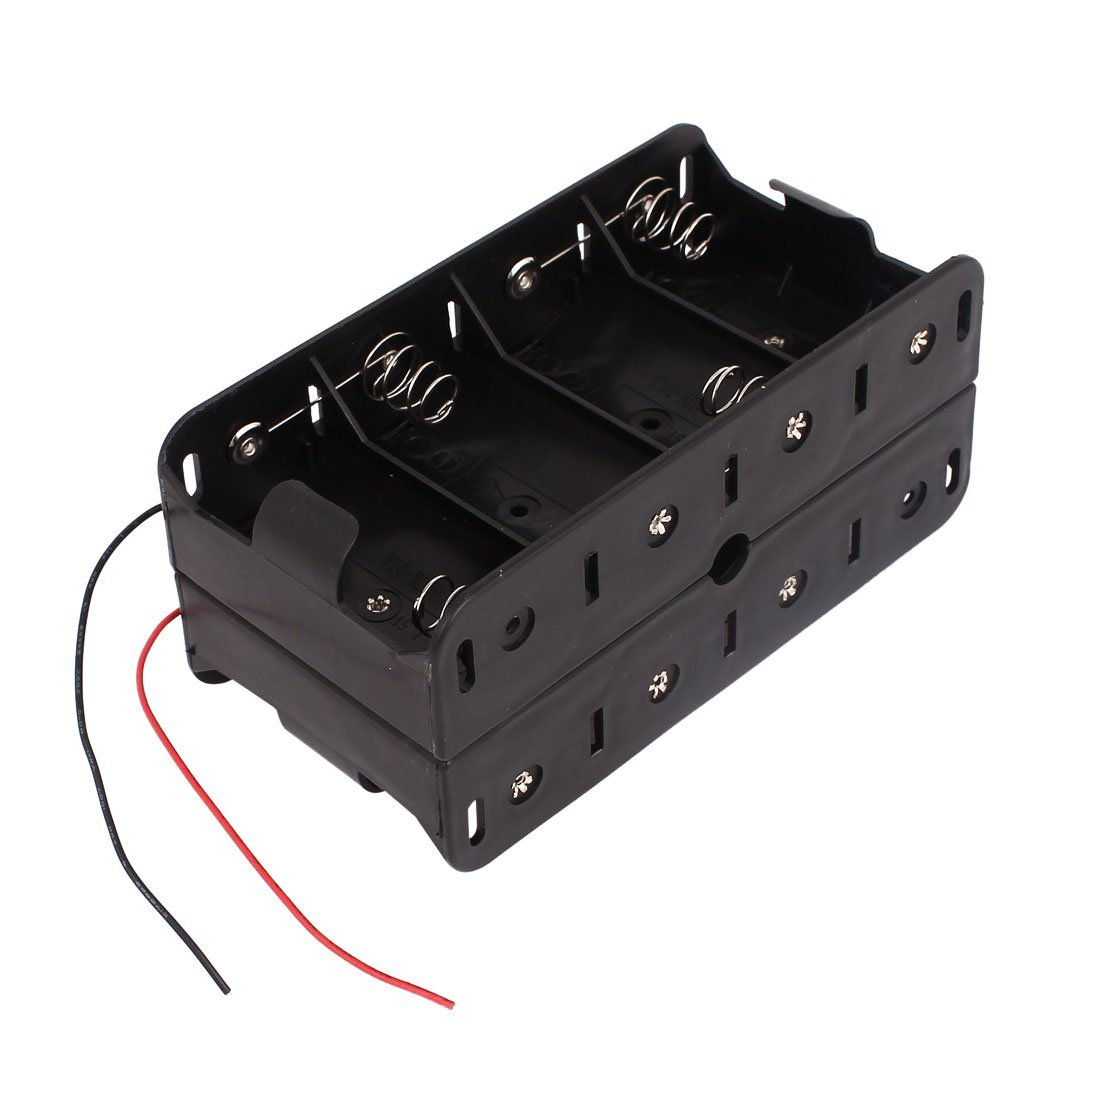 Cheap 6v Battery Box Dual Find Deals On Line At Wiring Batteries In Series Get Quotations 15v D Size Toogoor Wires Double Sides Storage Case